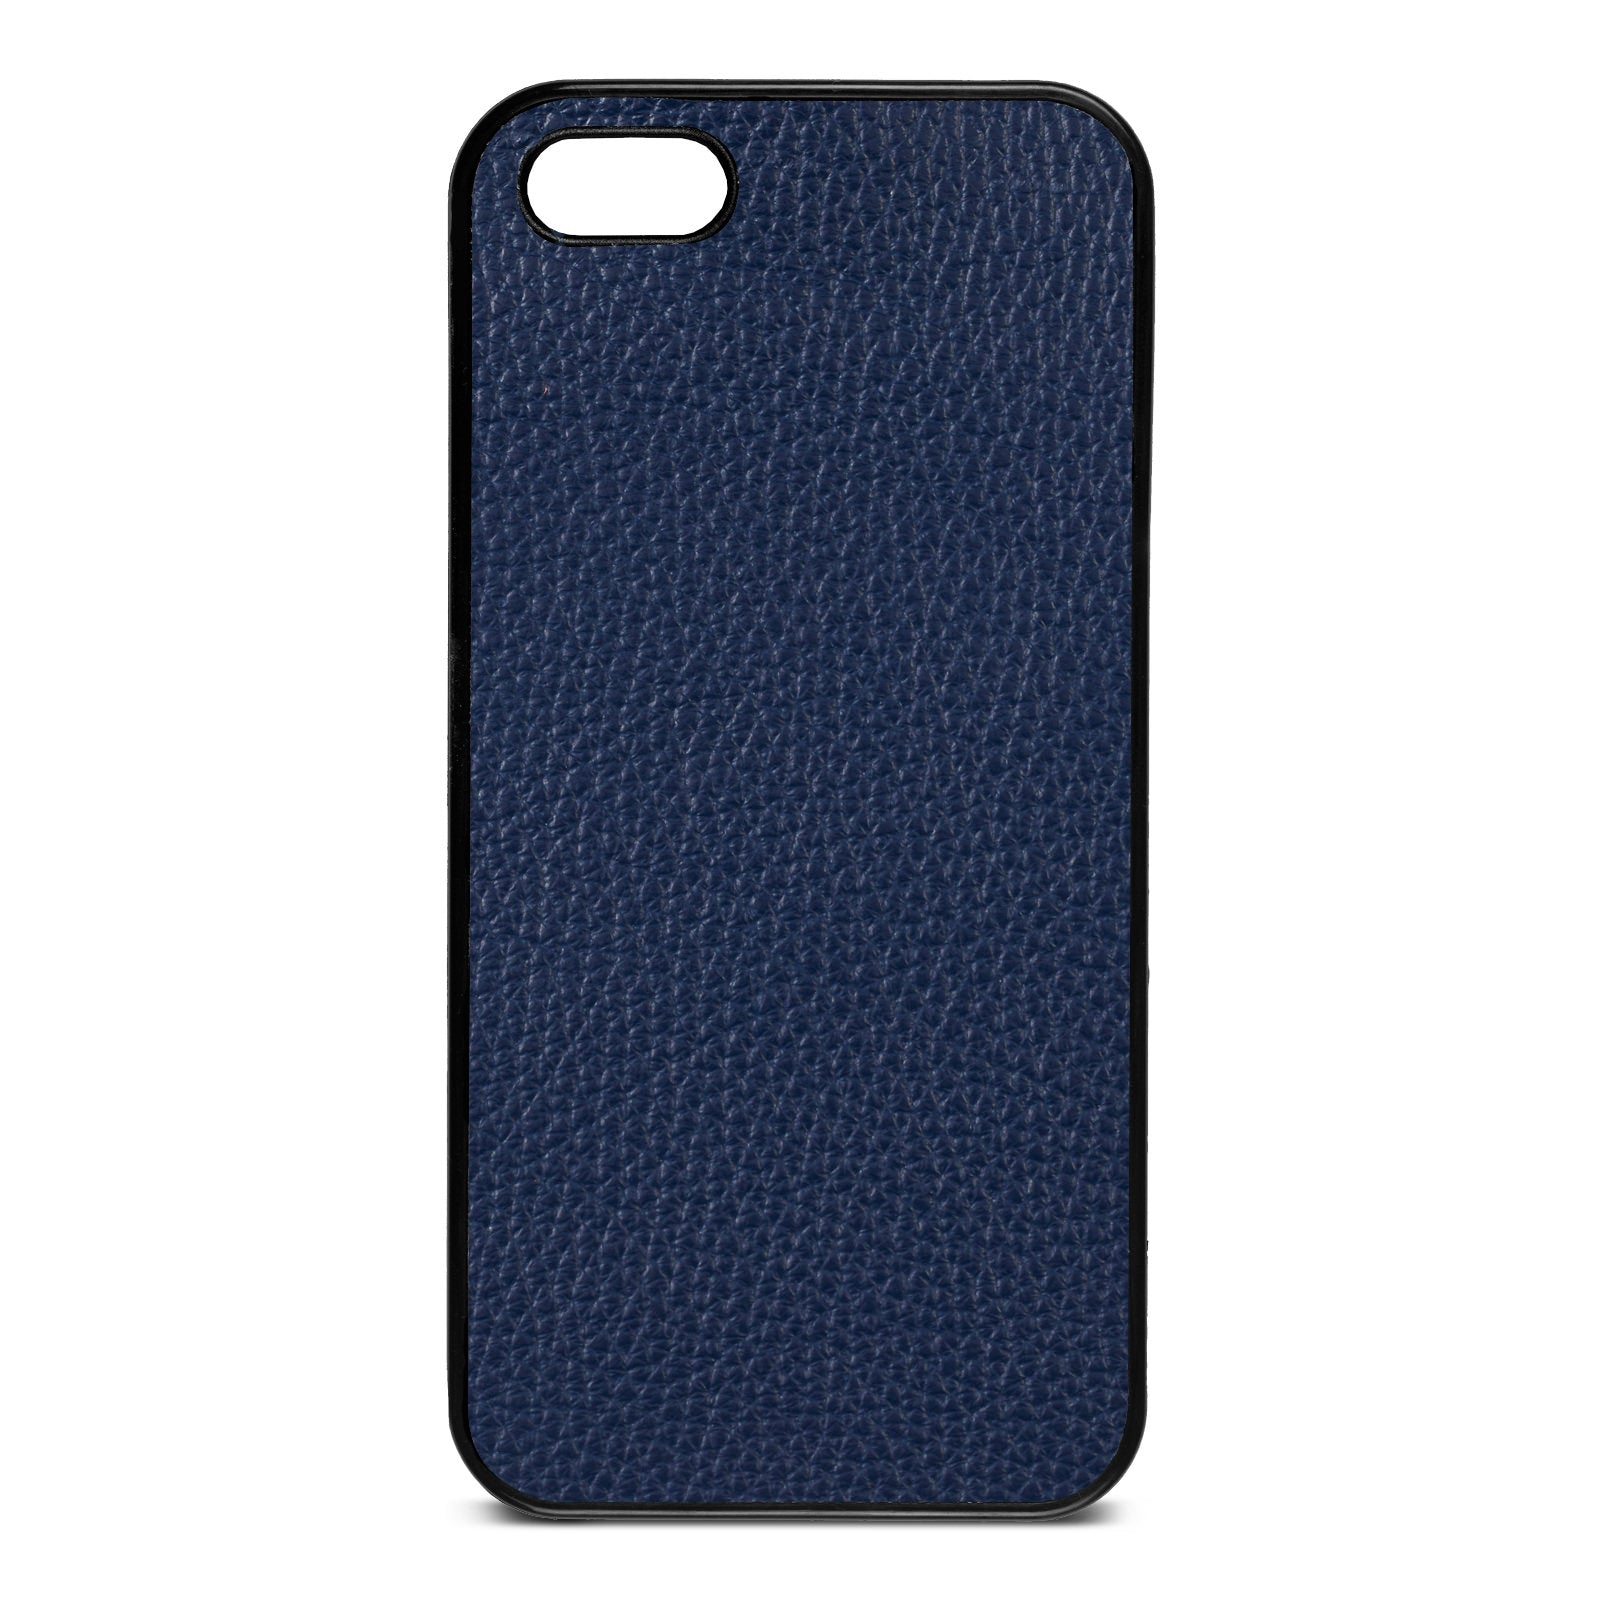 Blank iPhone 5 Navy Blue Pebble Grain Leather Case